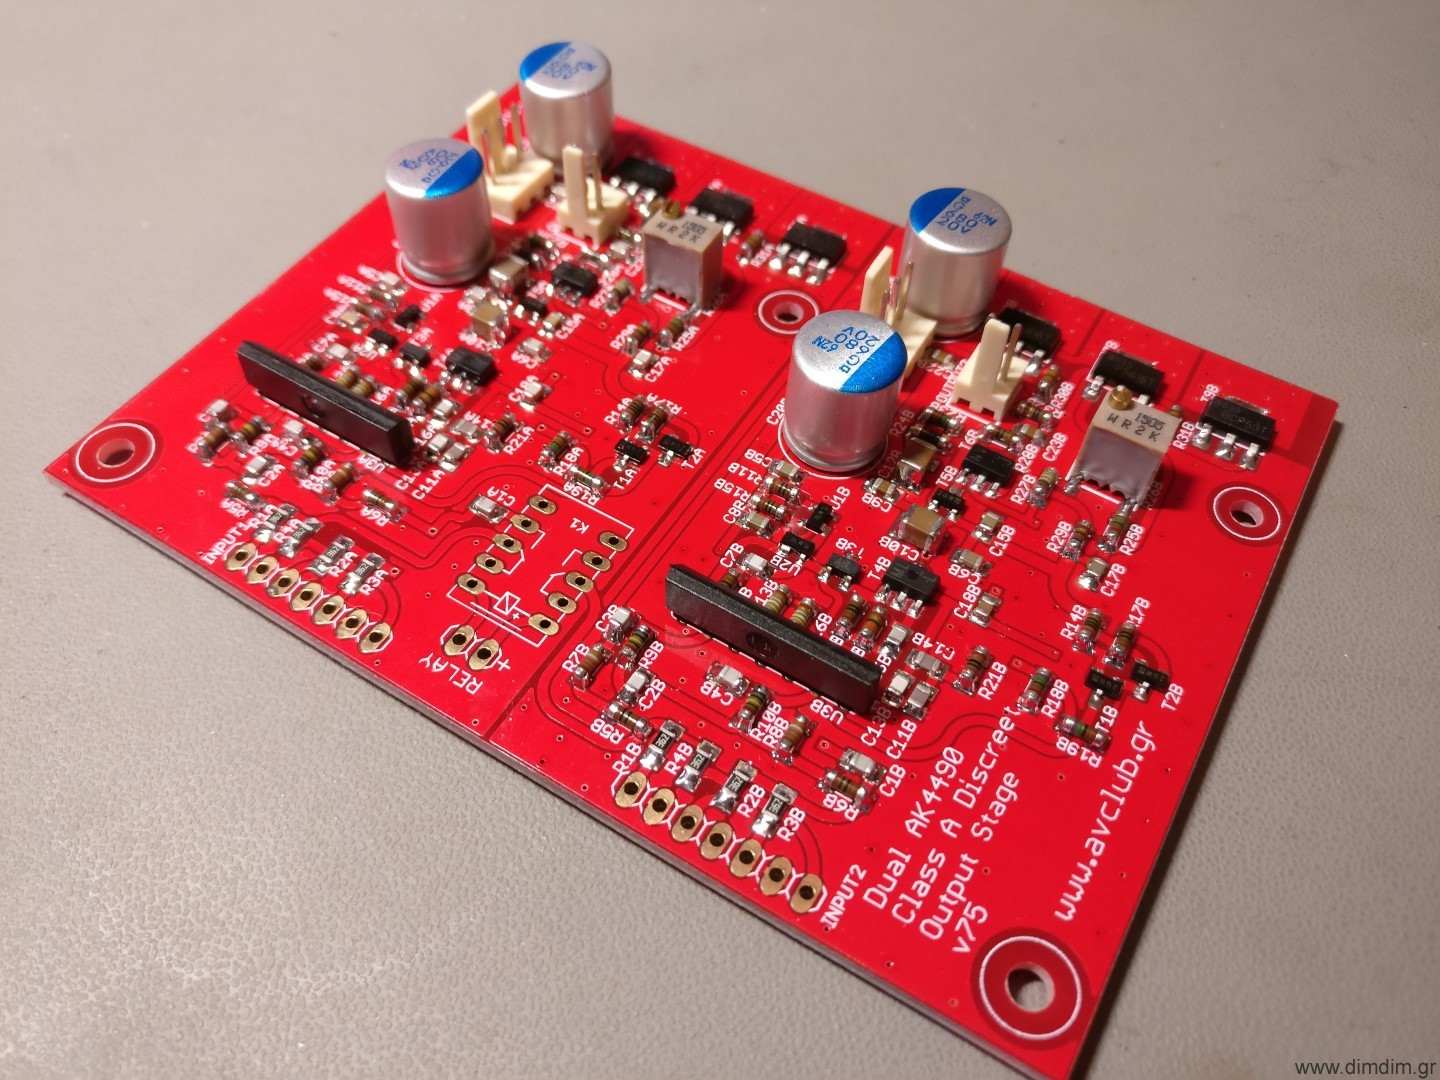 Dimdims Blog Diy Audio Arduino Computers Music Page 2 Class D Schematic Help Needed Diyaudio It Is A Fully Discreet Single Ended Output Stage Outputting 24v Rms